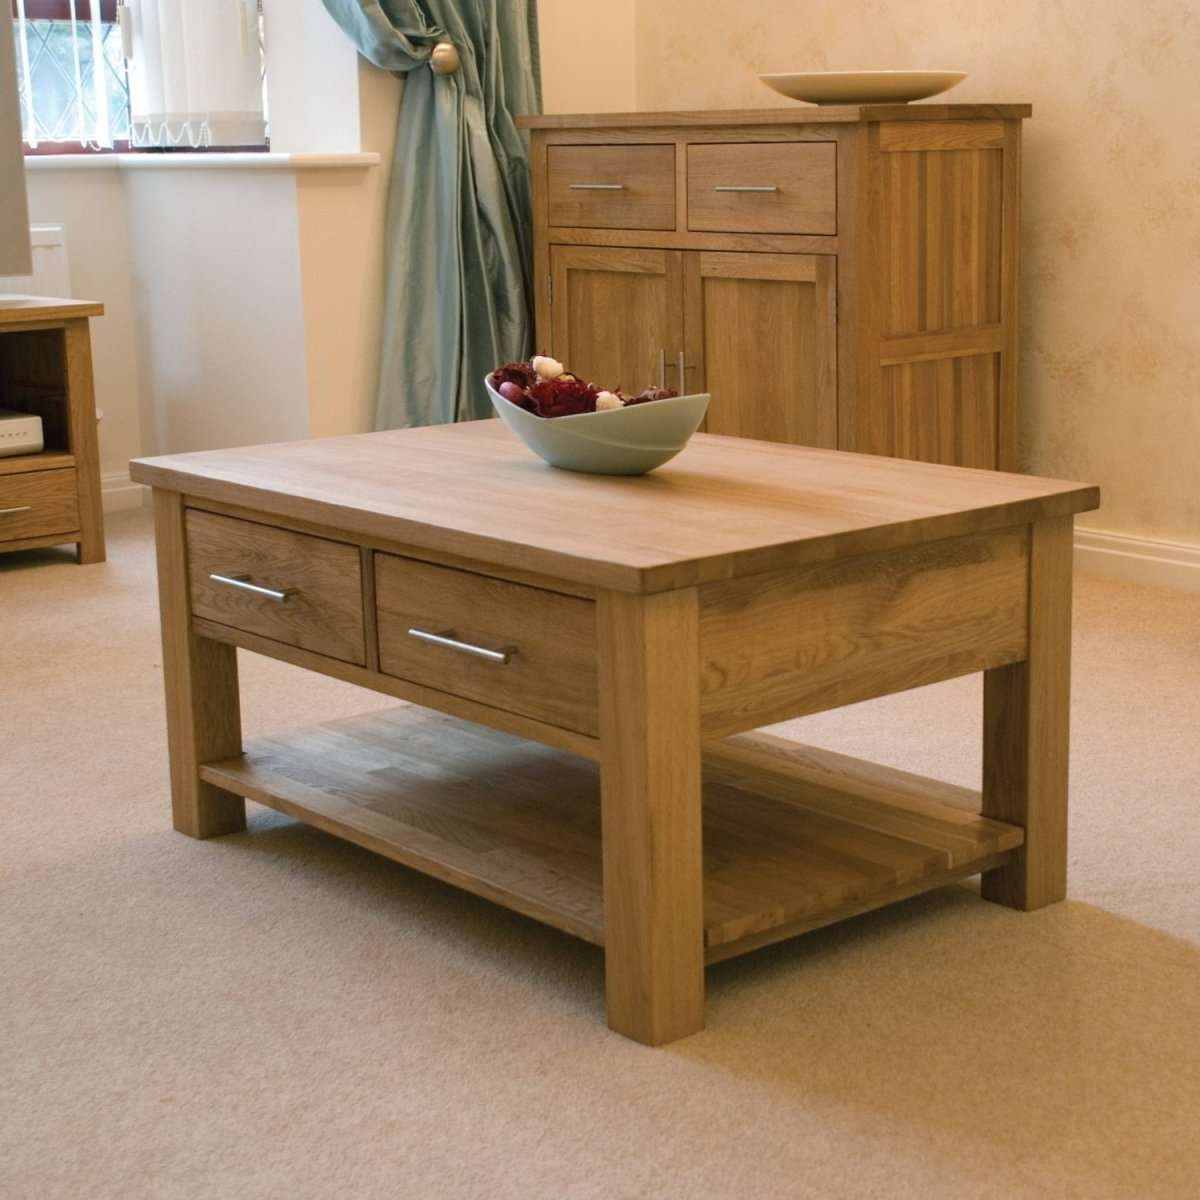 Several Cool Coffee Table To Serve The Best Welcoming Tone (View 10 of 20)